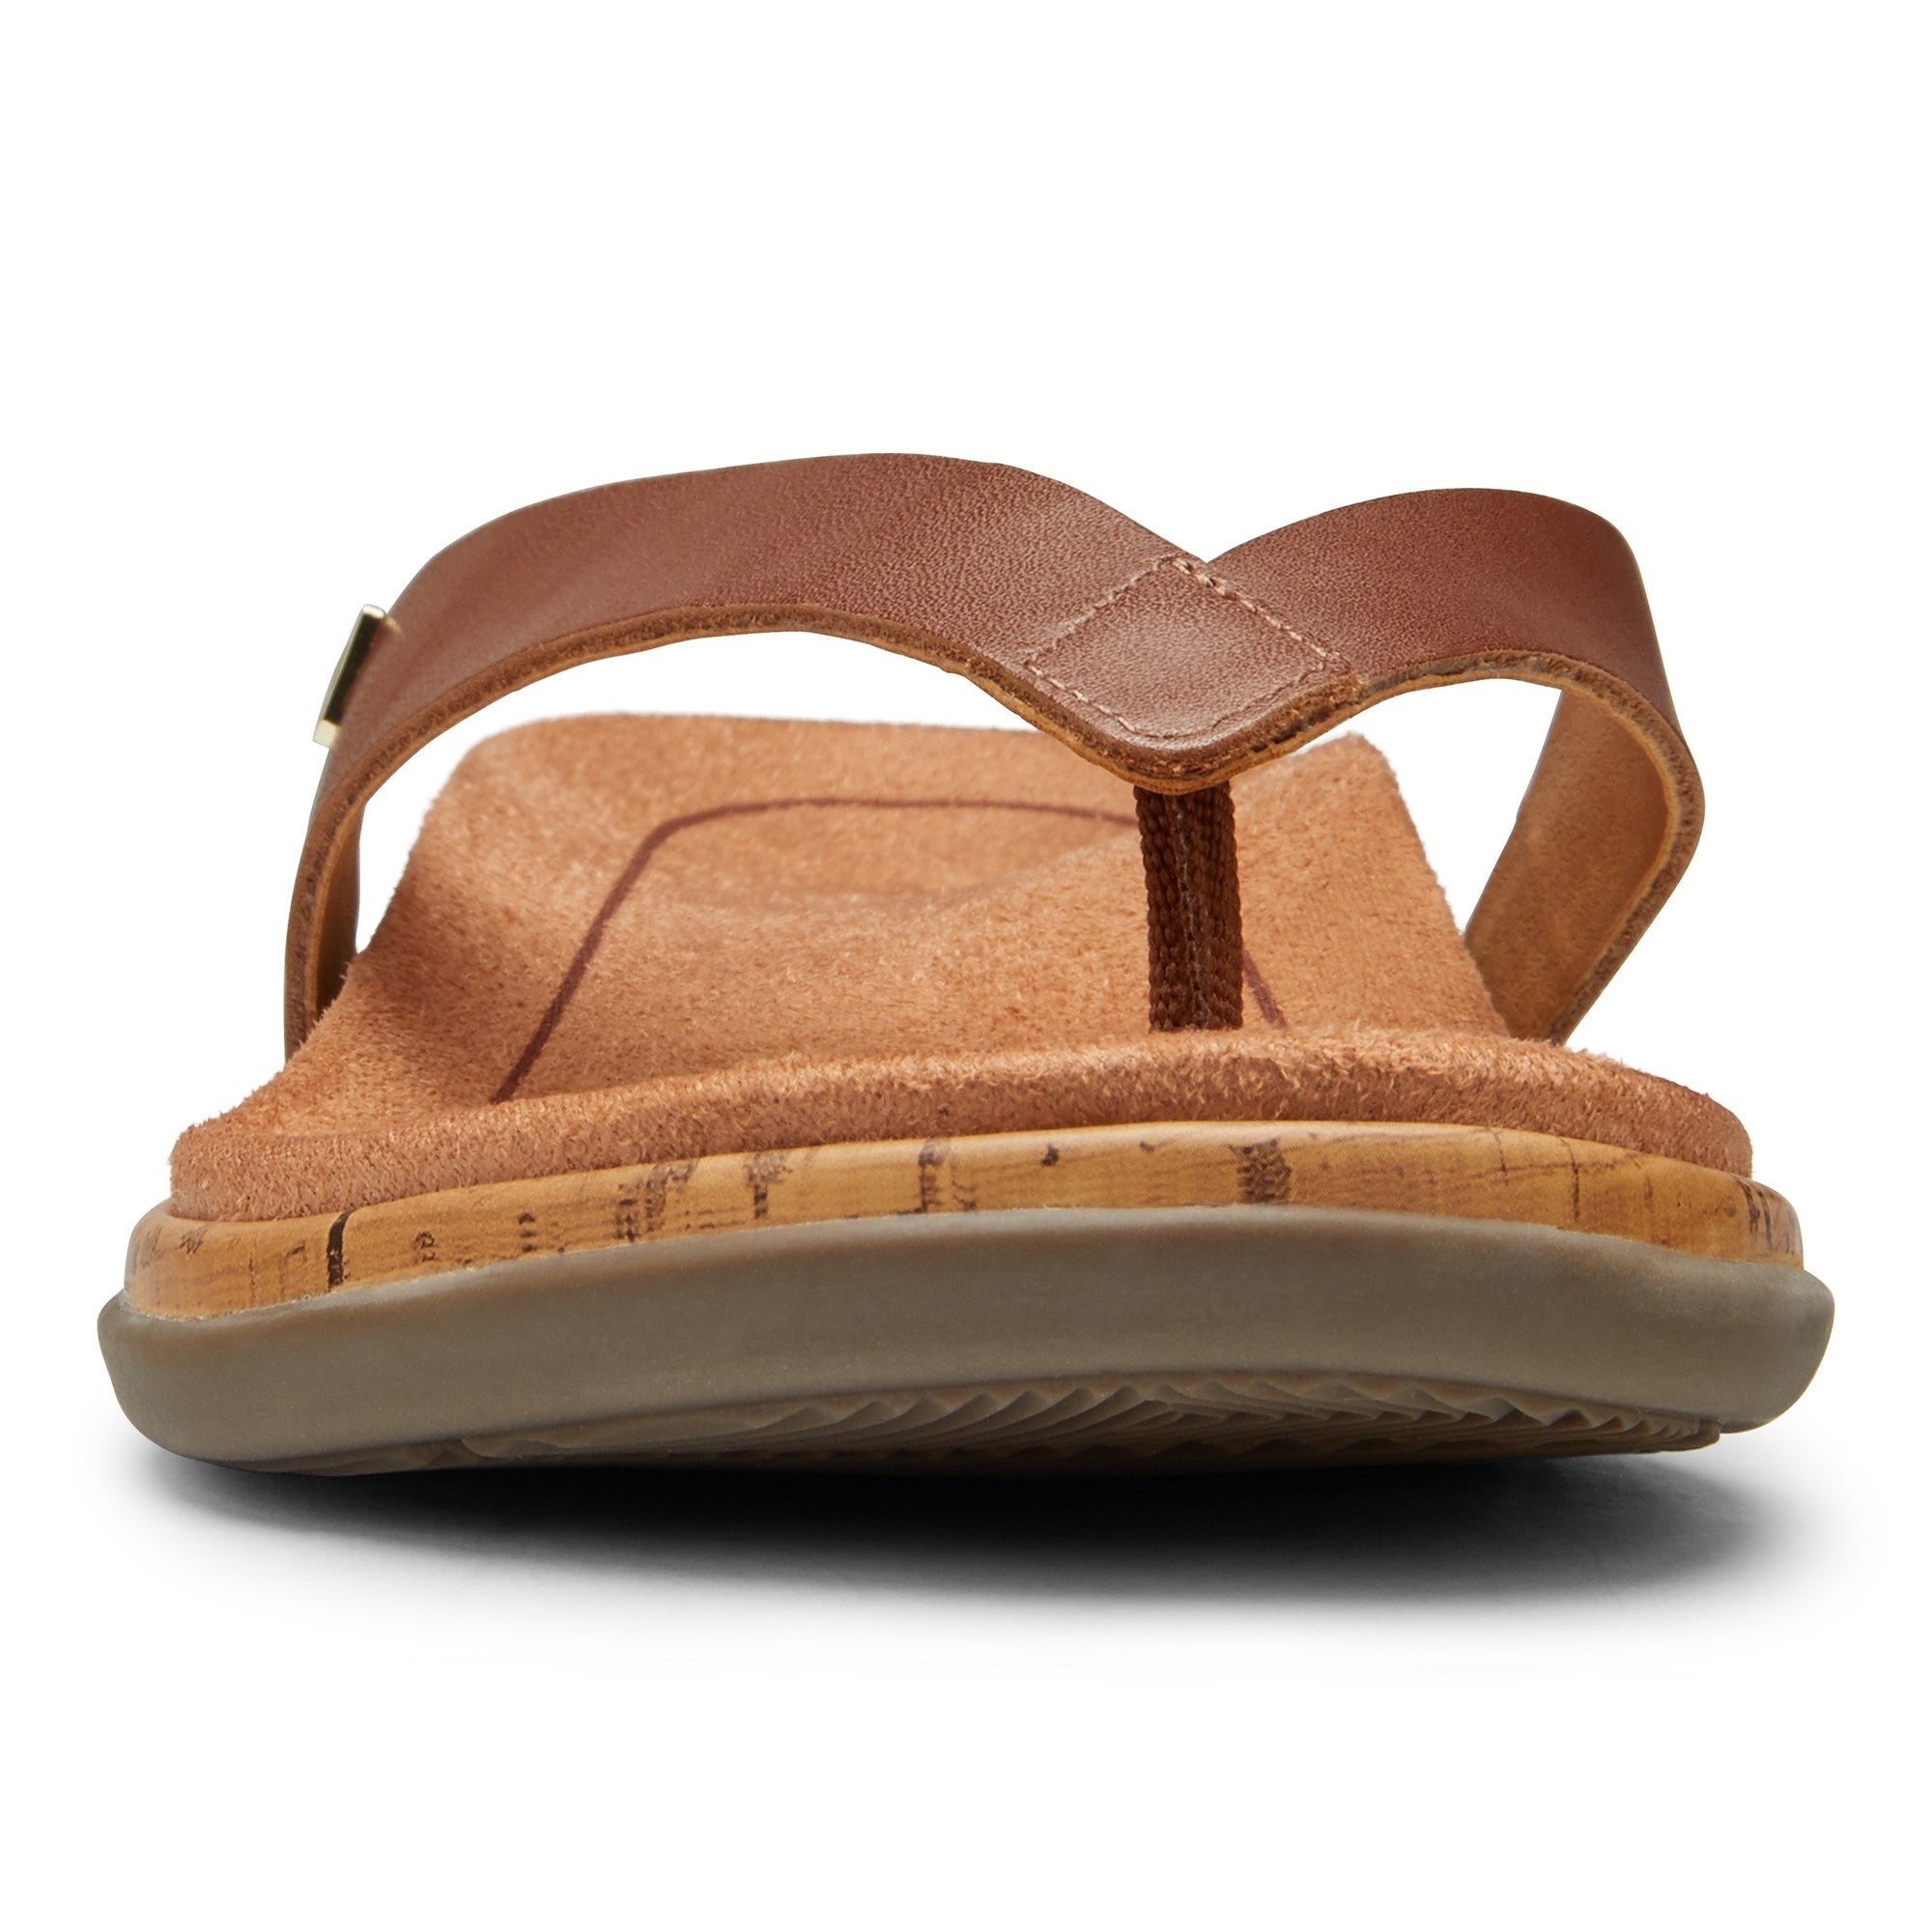 Vionic Daniela Leather Sandal - Cinnamon